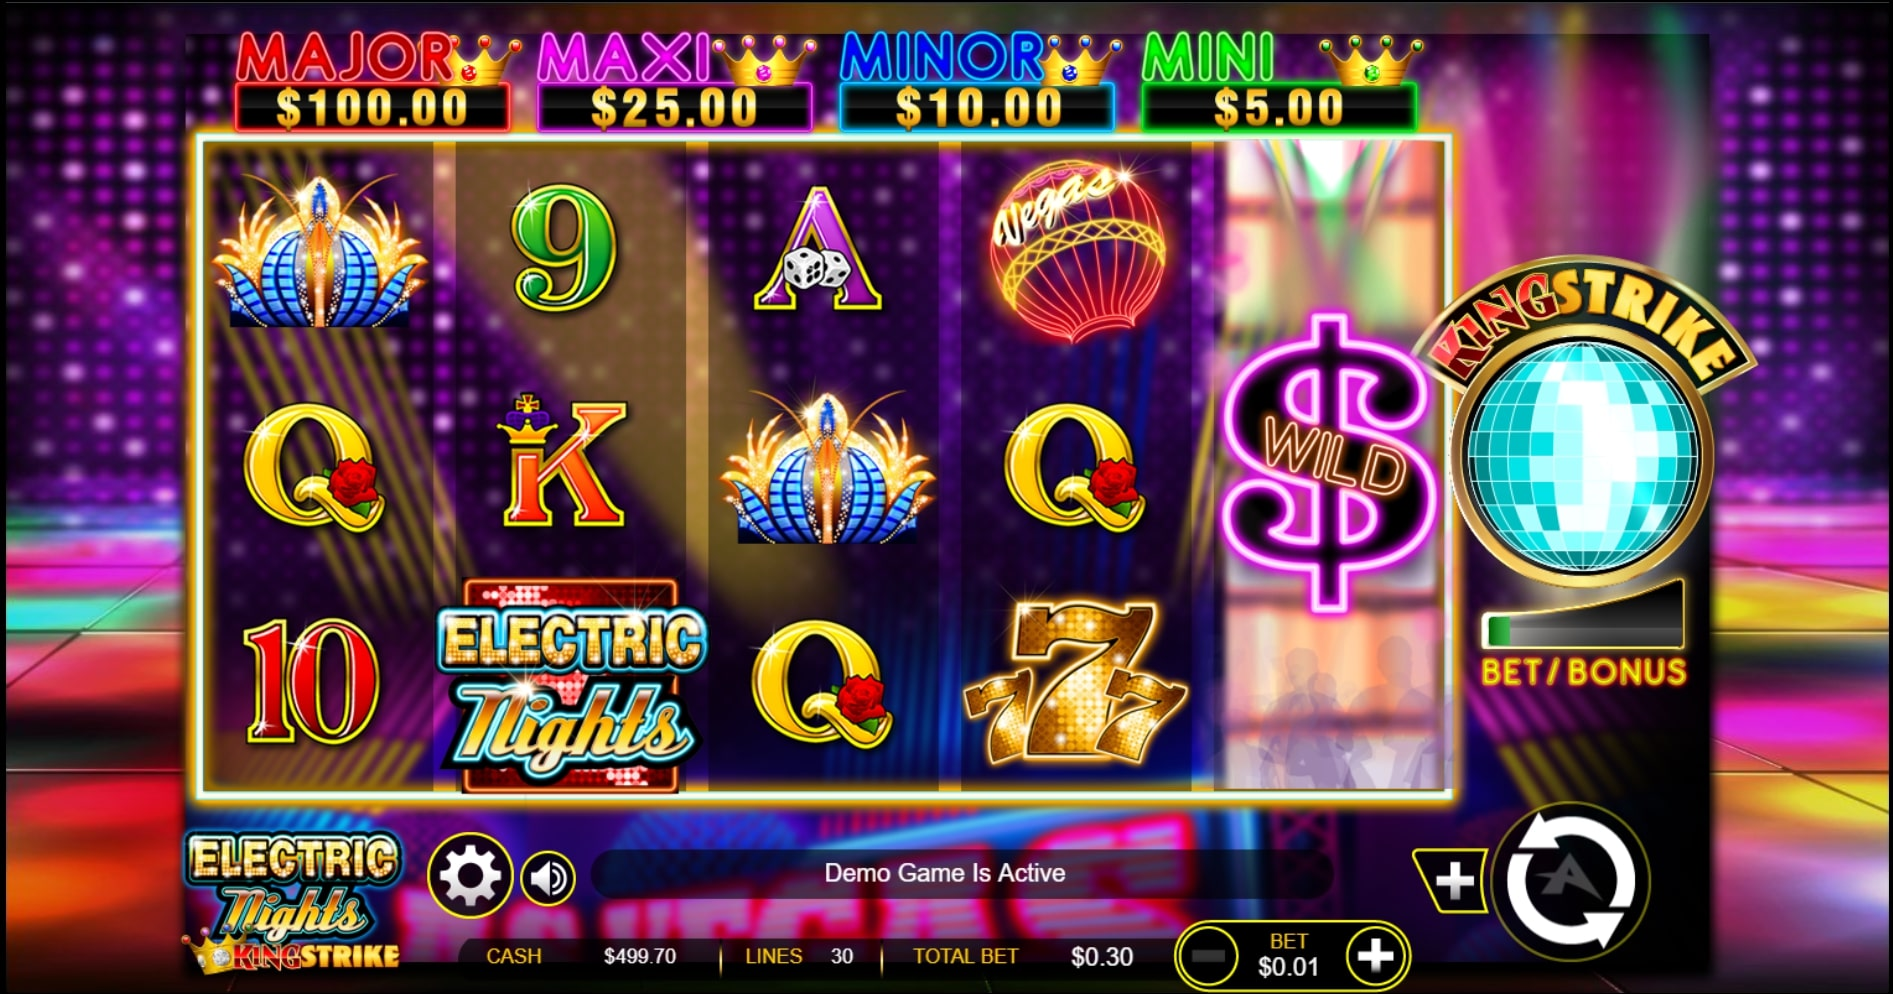 Electric Nights King Strike slot screenshot of demo game with colorful gameplay.